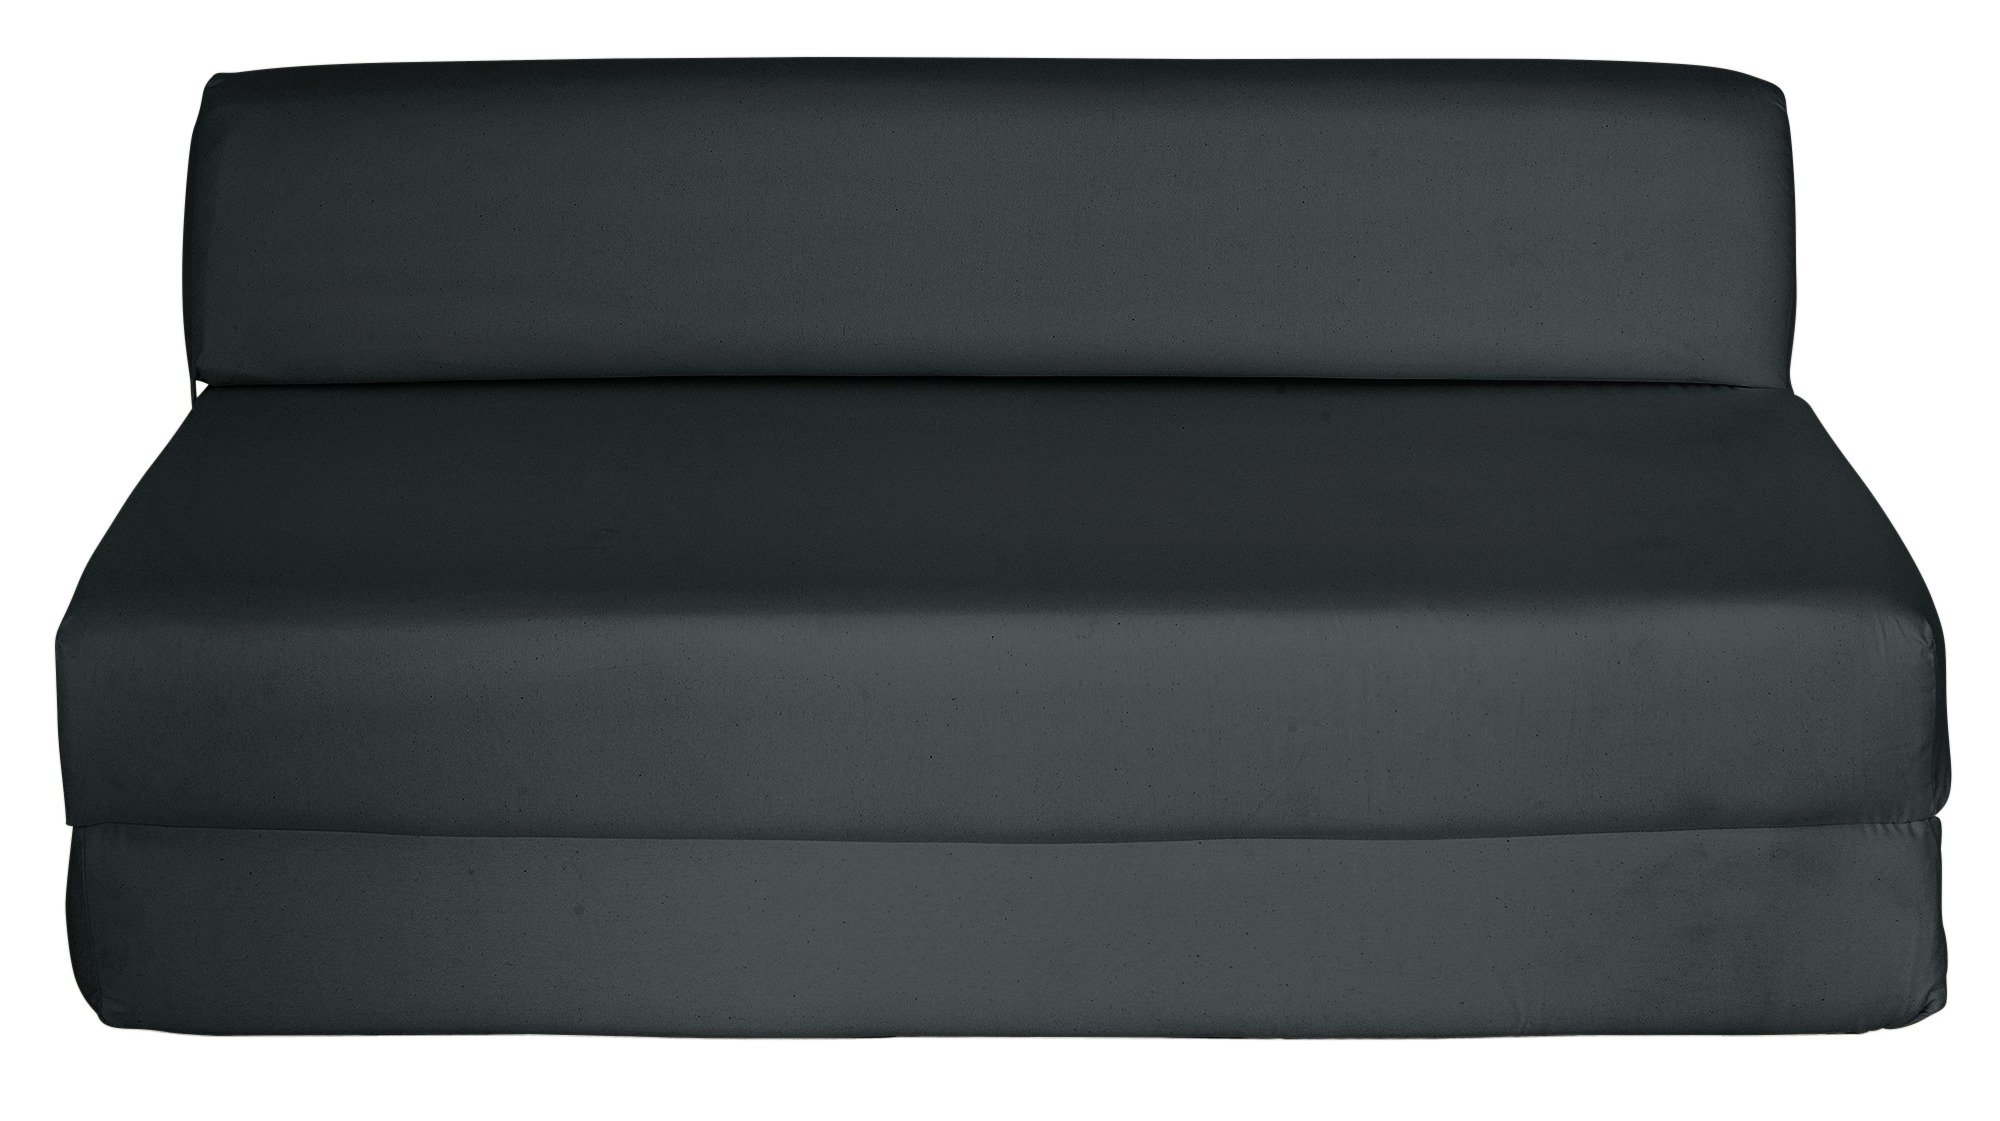 Buy ColourMatch Small Double Fabric Chairbed Jet Black at Argos